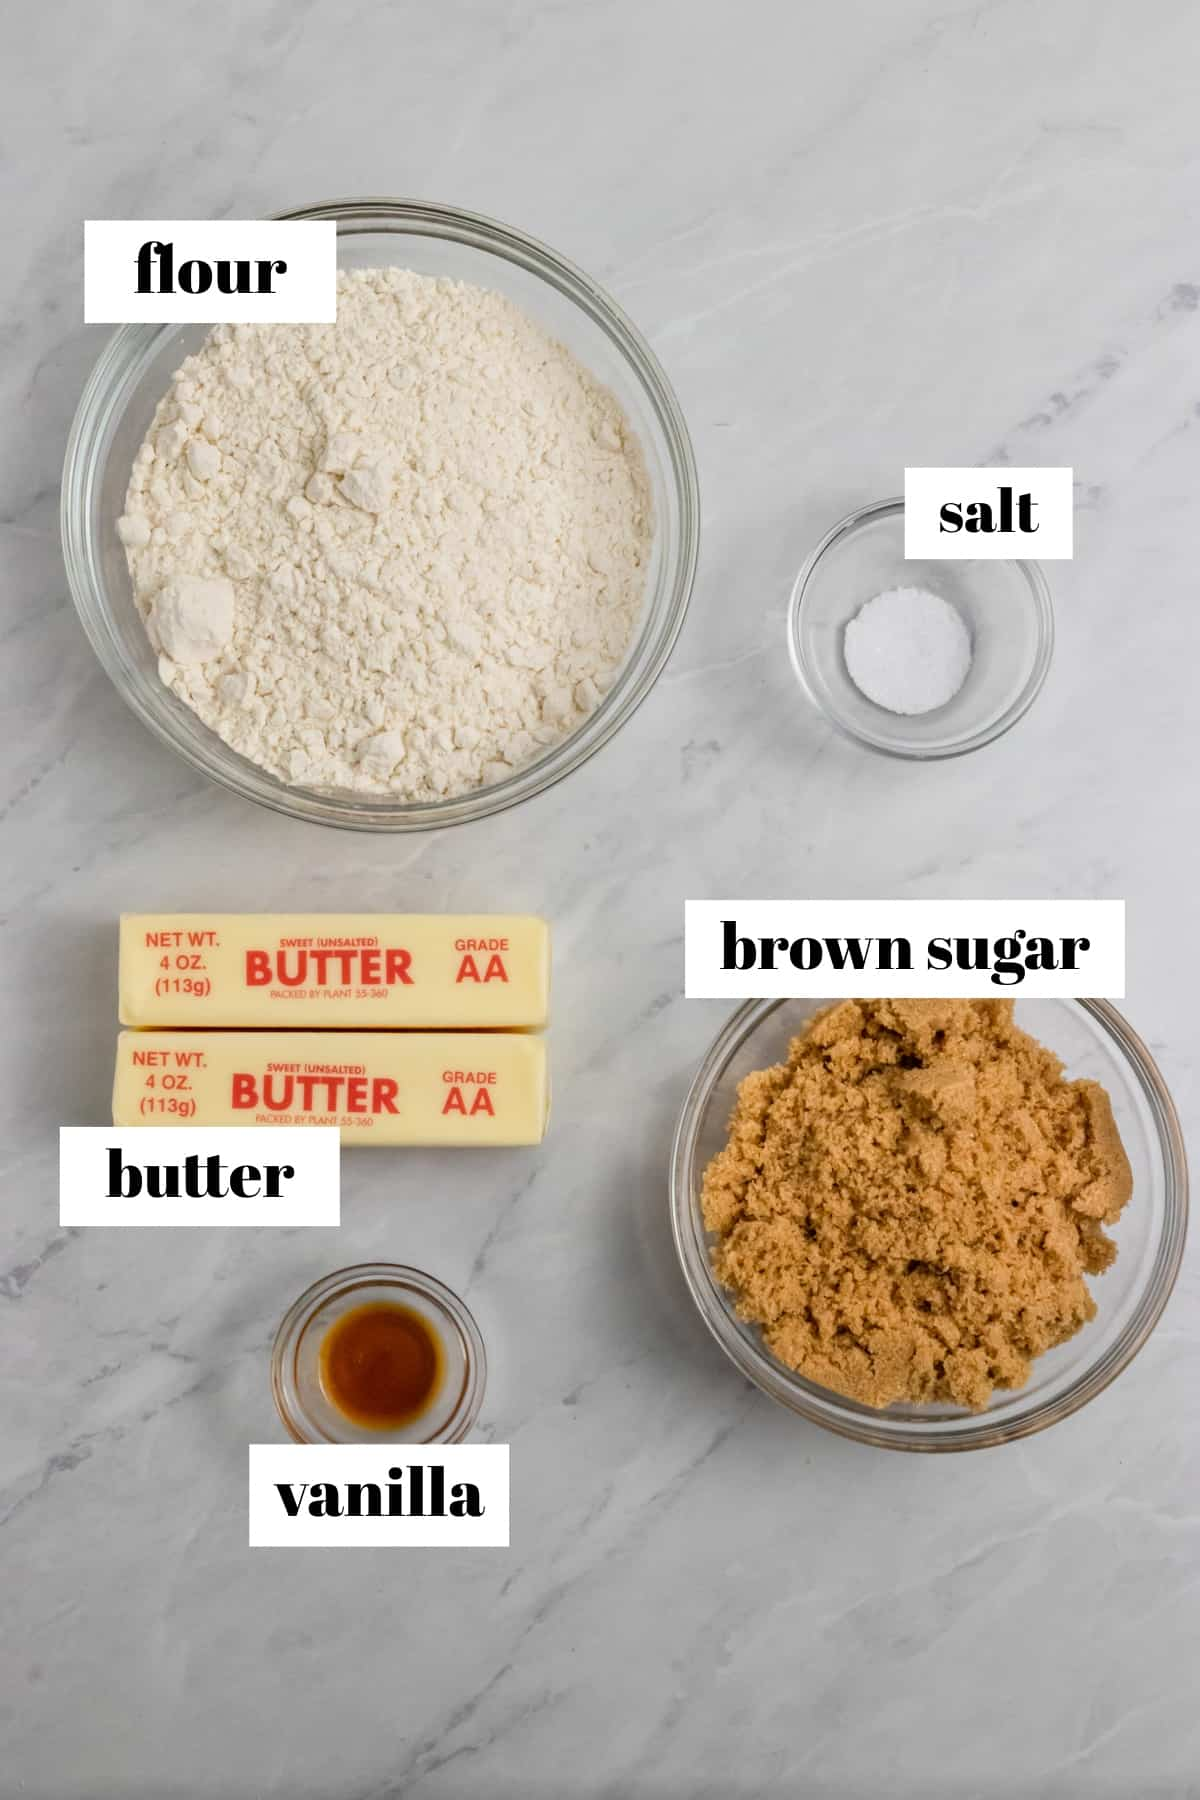 Butter, flour, brown sugar and vanilla labeled on counter.